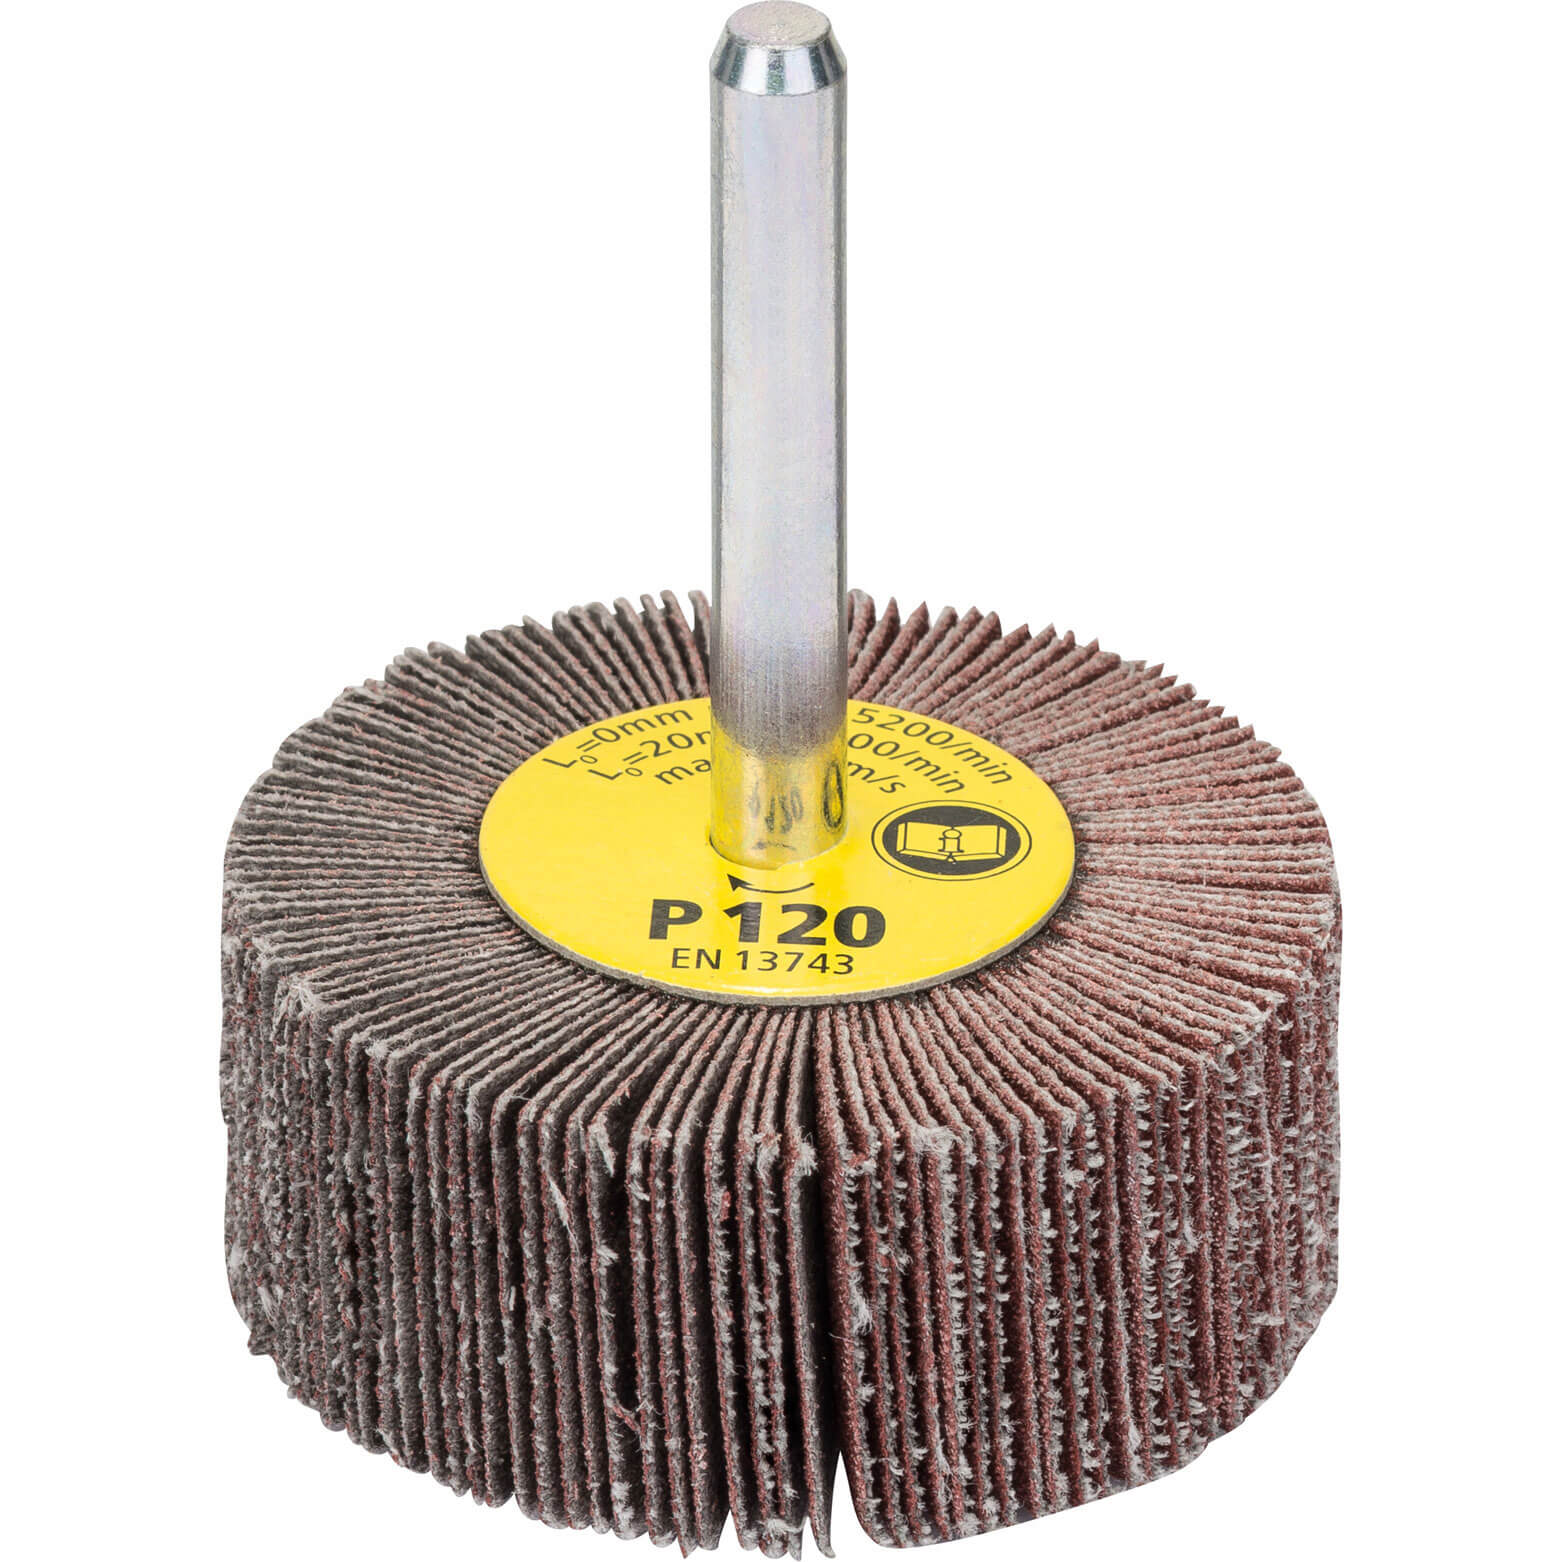 Image of Bosch Abrasive Flap Wheel 50mm 20mm 120g